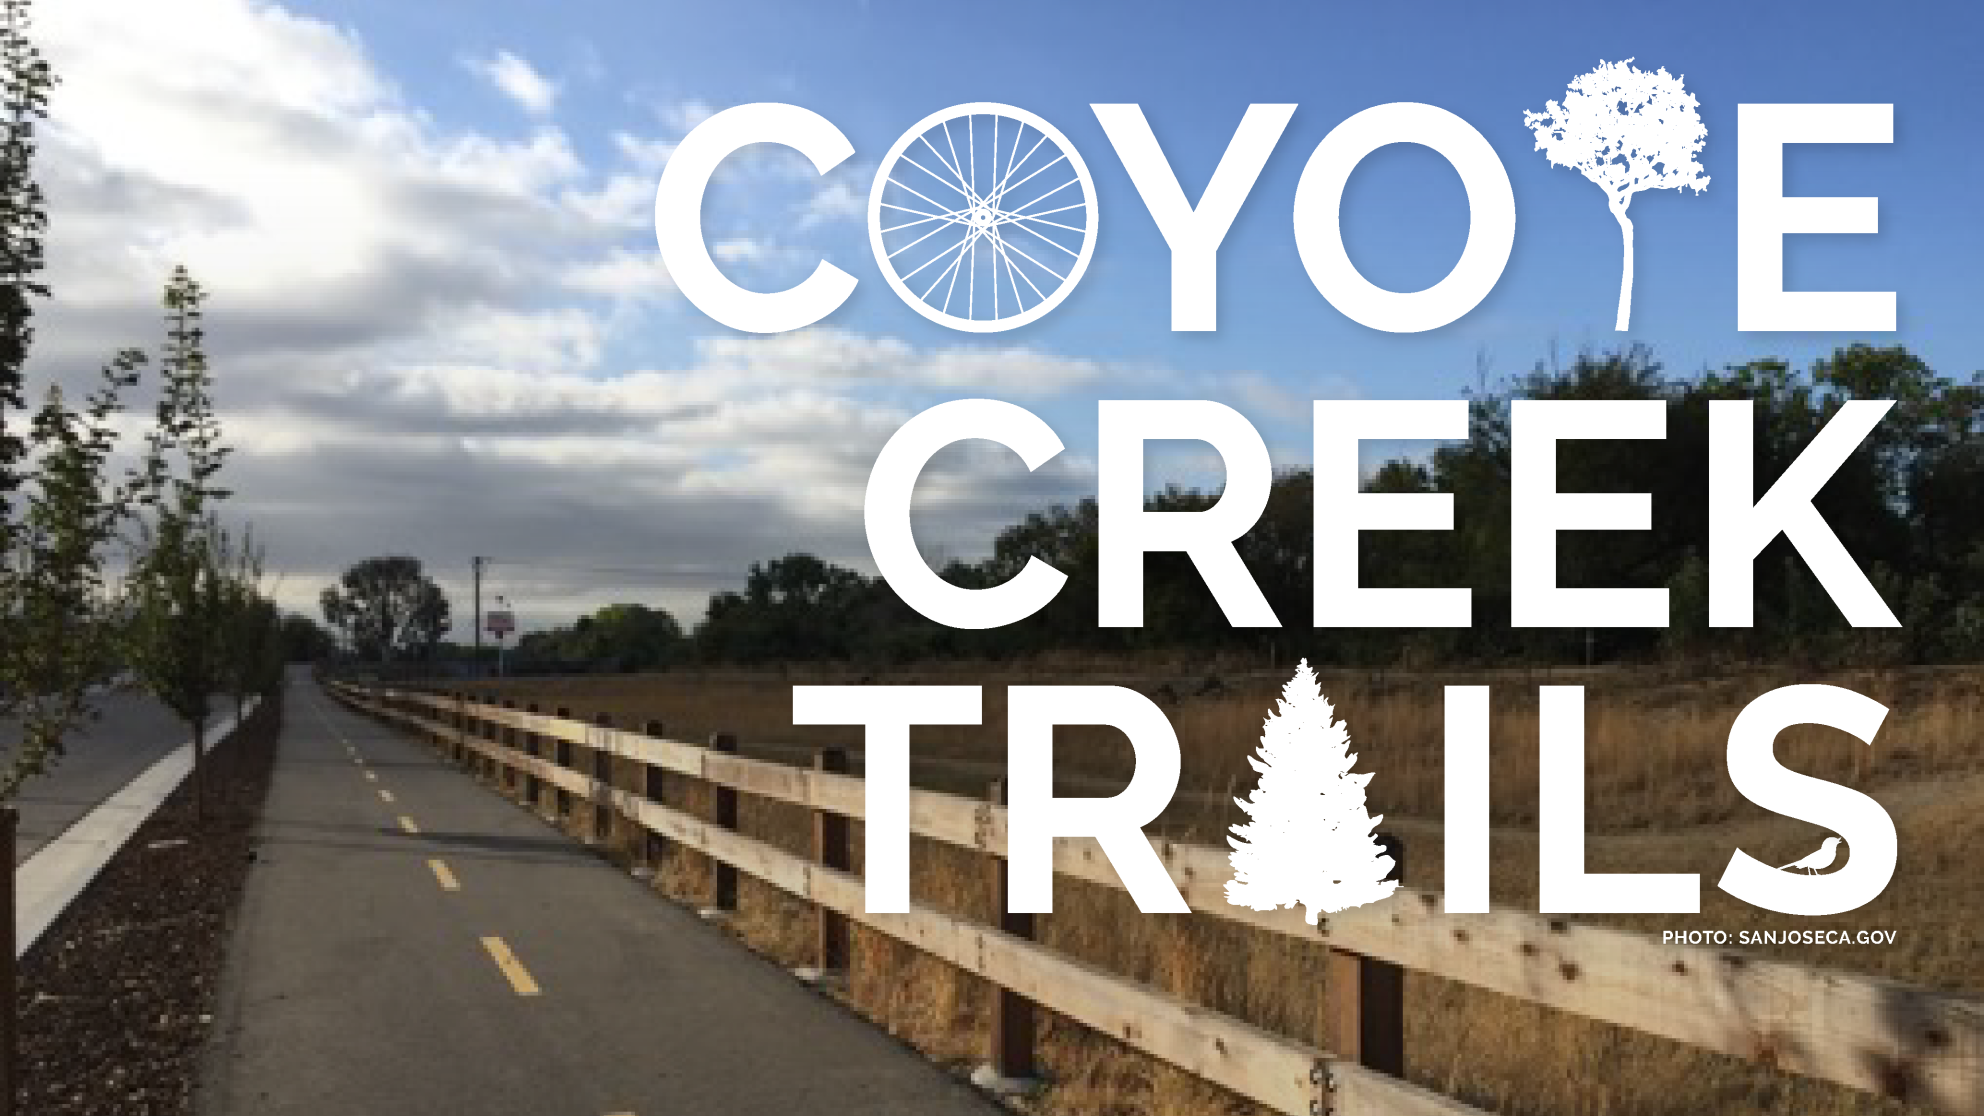 Coyote Creek Trails